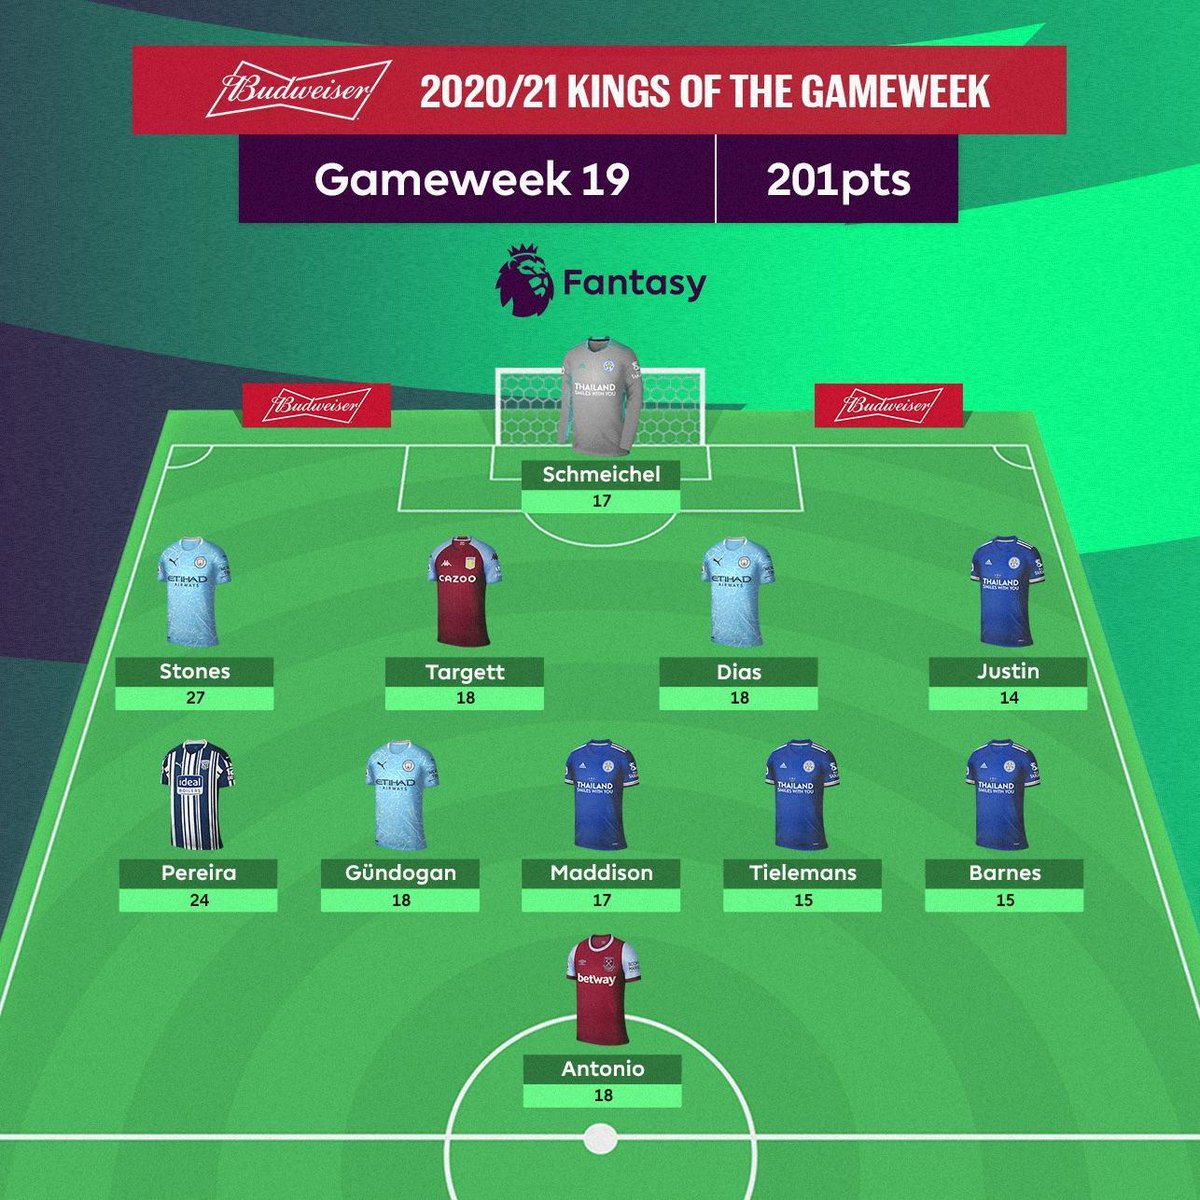 👑👑👑👑👑👑👑👑👑👑👑  Your @budfootball Kings of GW19 🙌  #FPL